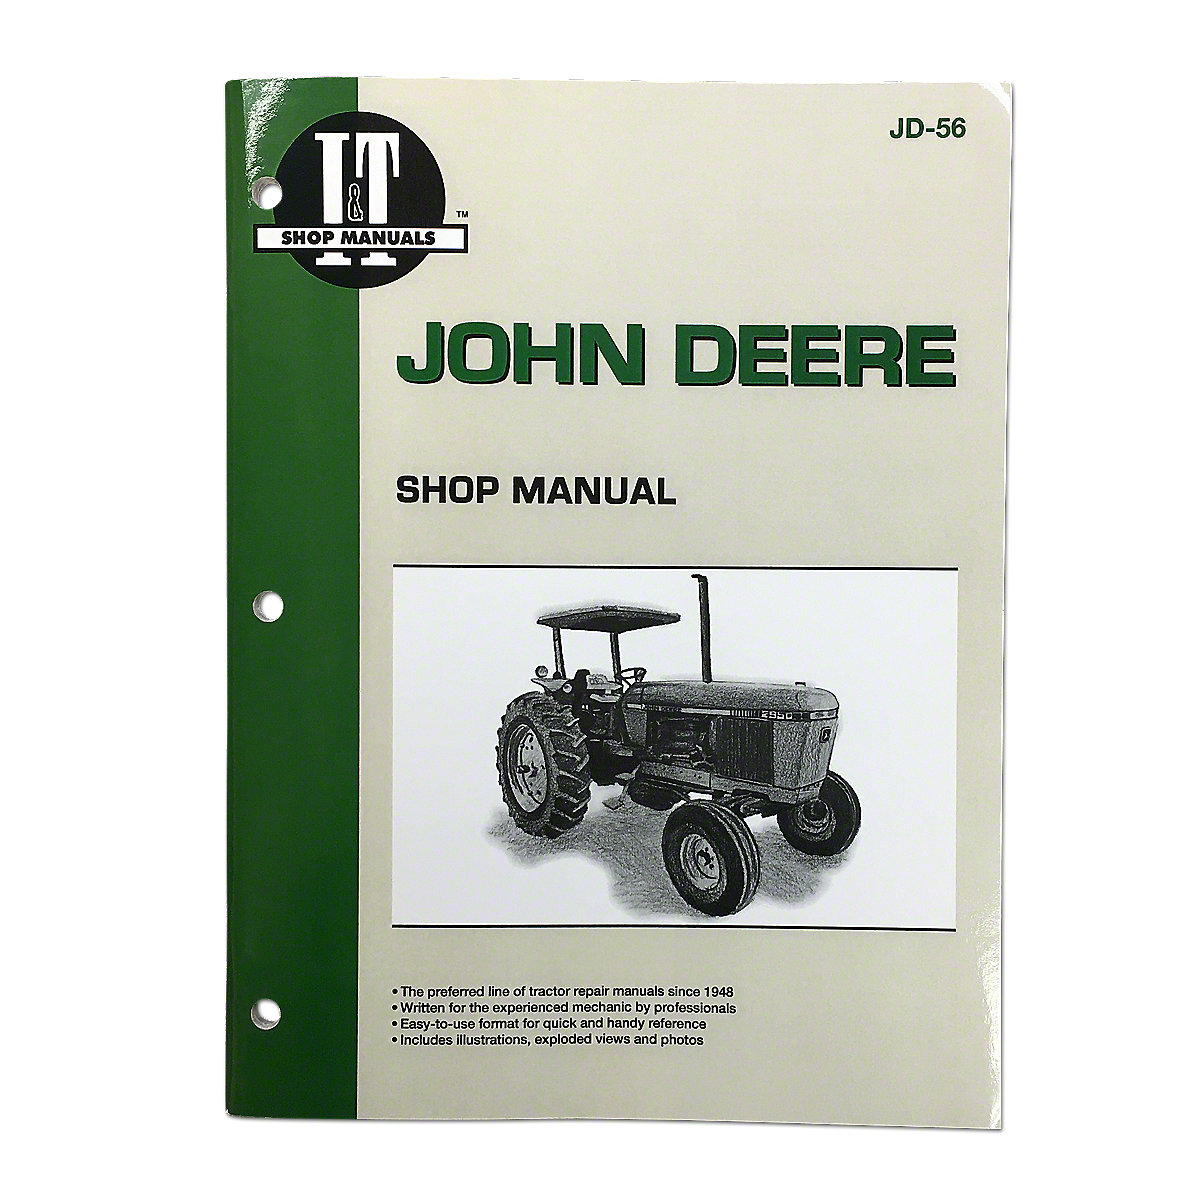 I & T Shop Service Manual. In Stock. JD56